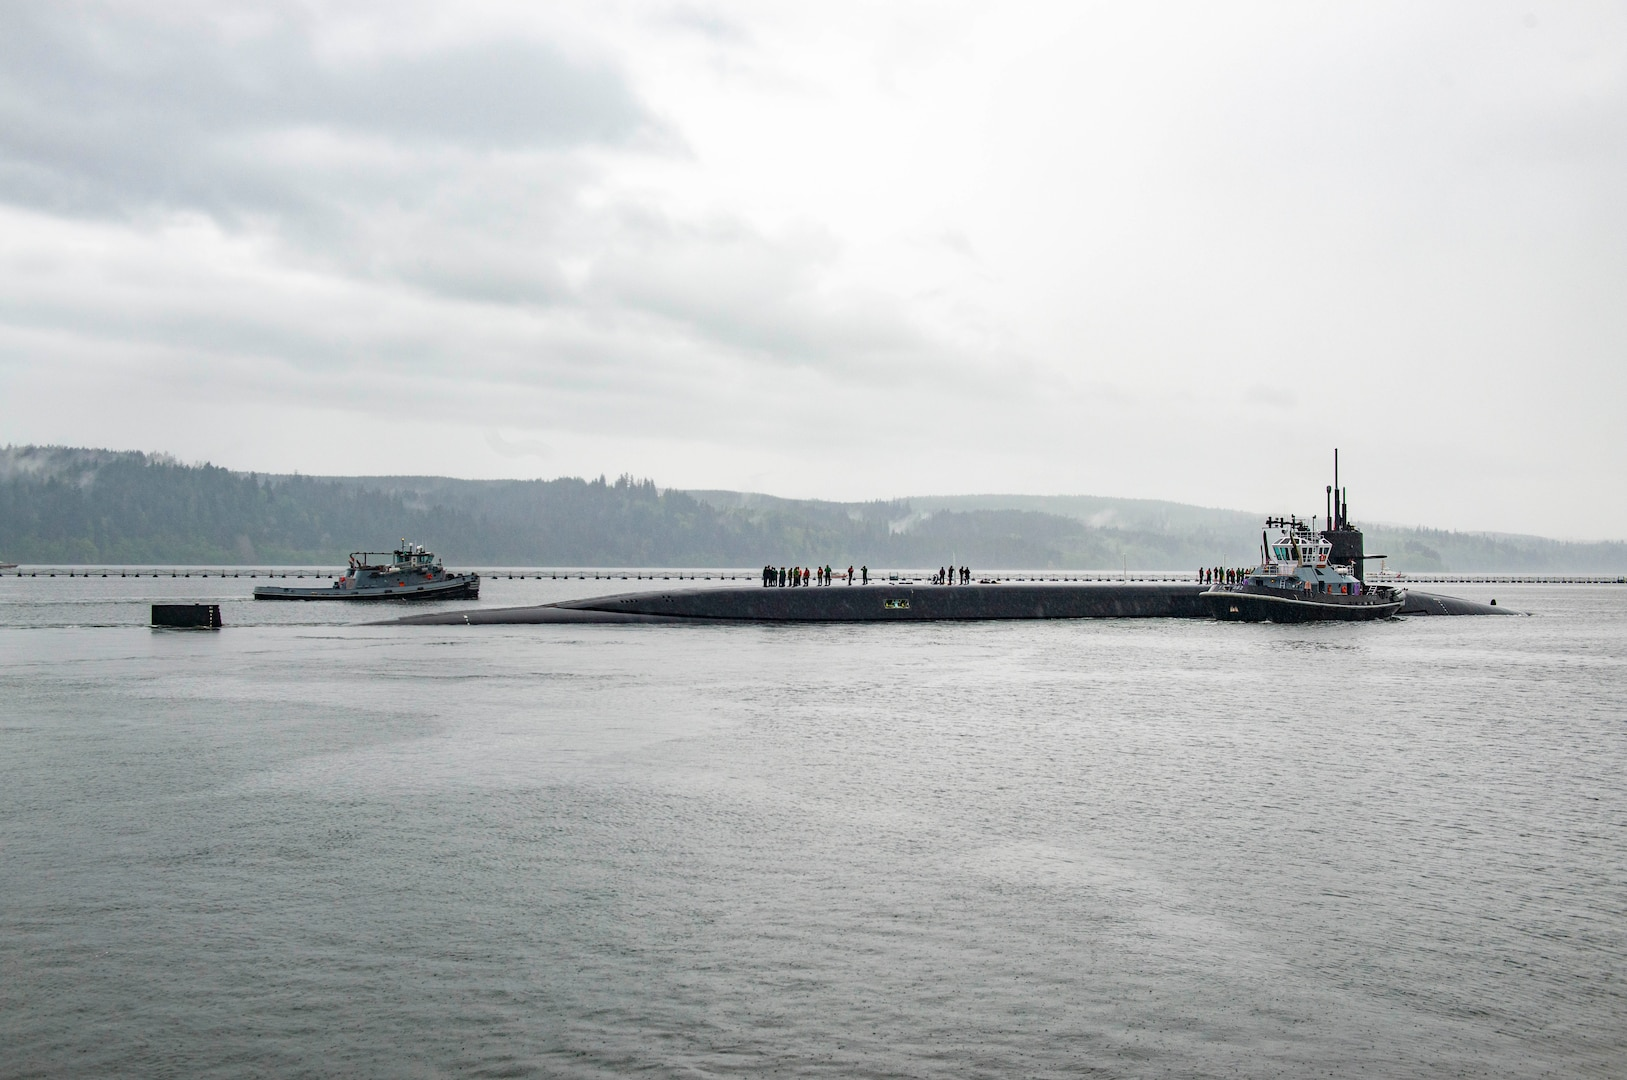 The gold crew of the Ohio-class ballistic-missile submarine USS Maine (SSBN 741) officially returned the boat to strategic service, when they recently deployed on their first patrol in more than three years. Maine's three-year break in service involved an engineered refueling overhaul, estimated to extend the life of the ship by 20 years.